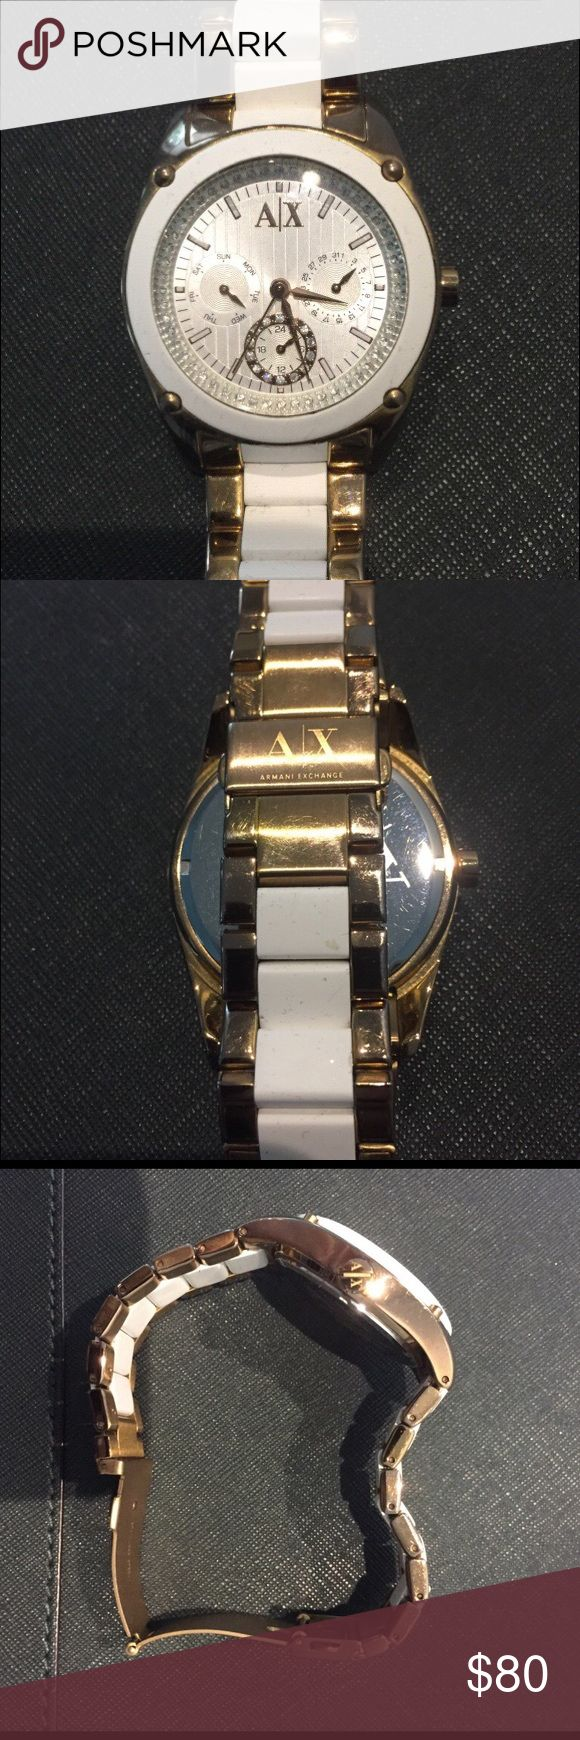 Armani Exchange Rose Gold Women's Watch Armani Exchange Ax 5036 Rose Gold two tone women's Watch. Barely used. Retail price is $240, looking for $80, price is negotiable. A/X Armani Exchange Accessories Watches